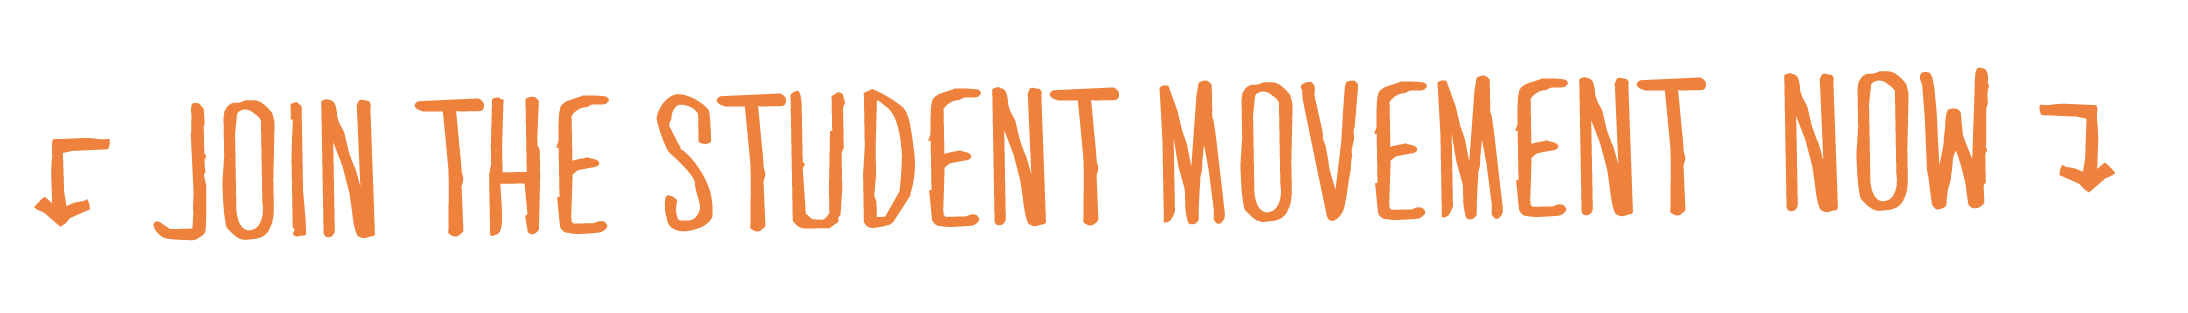 join-the-student-movement-now-text